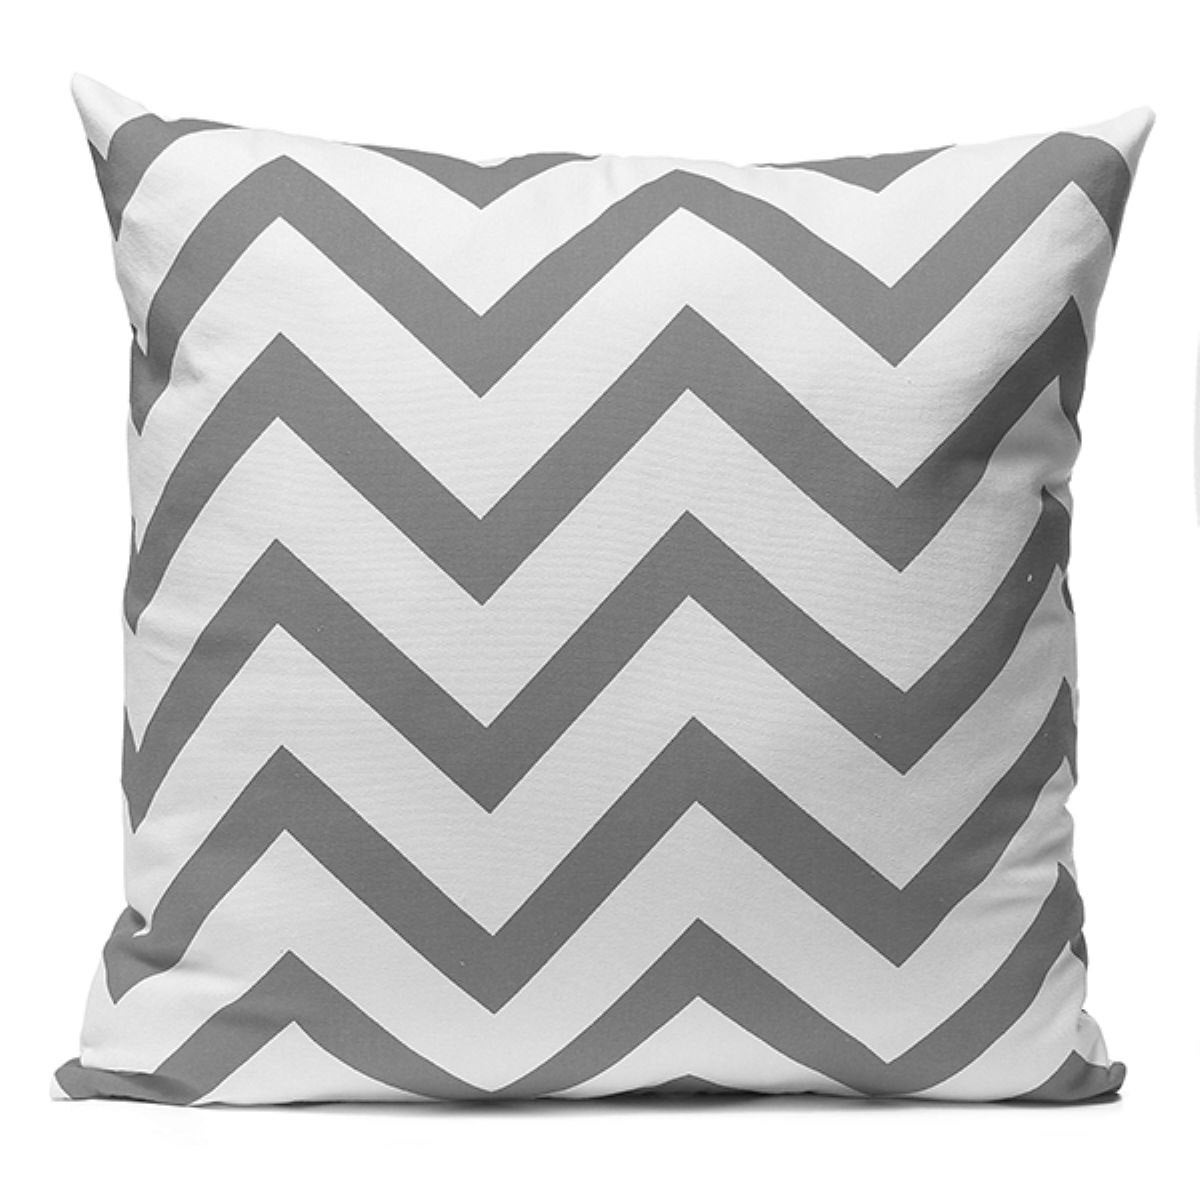 Chevron Grey and White Throw Pillow Cover Sofa Bed Home